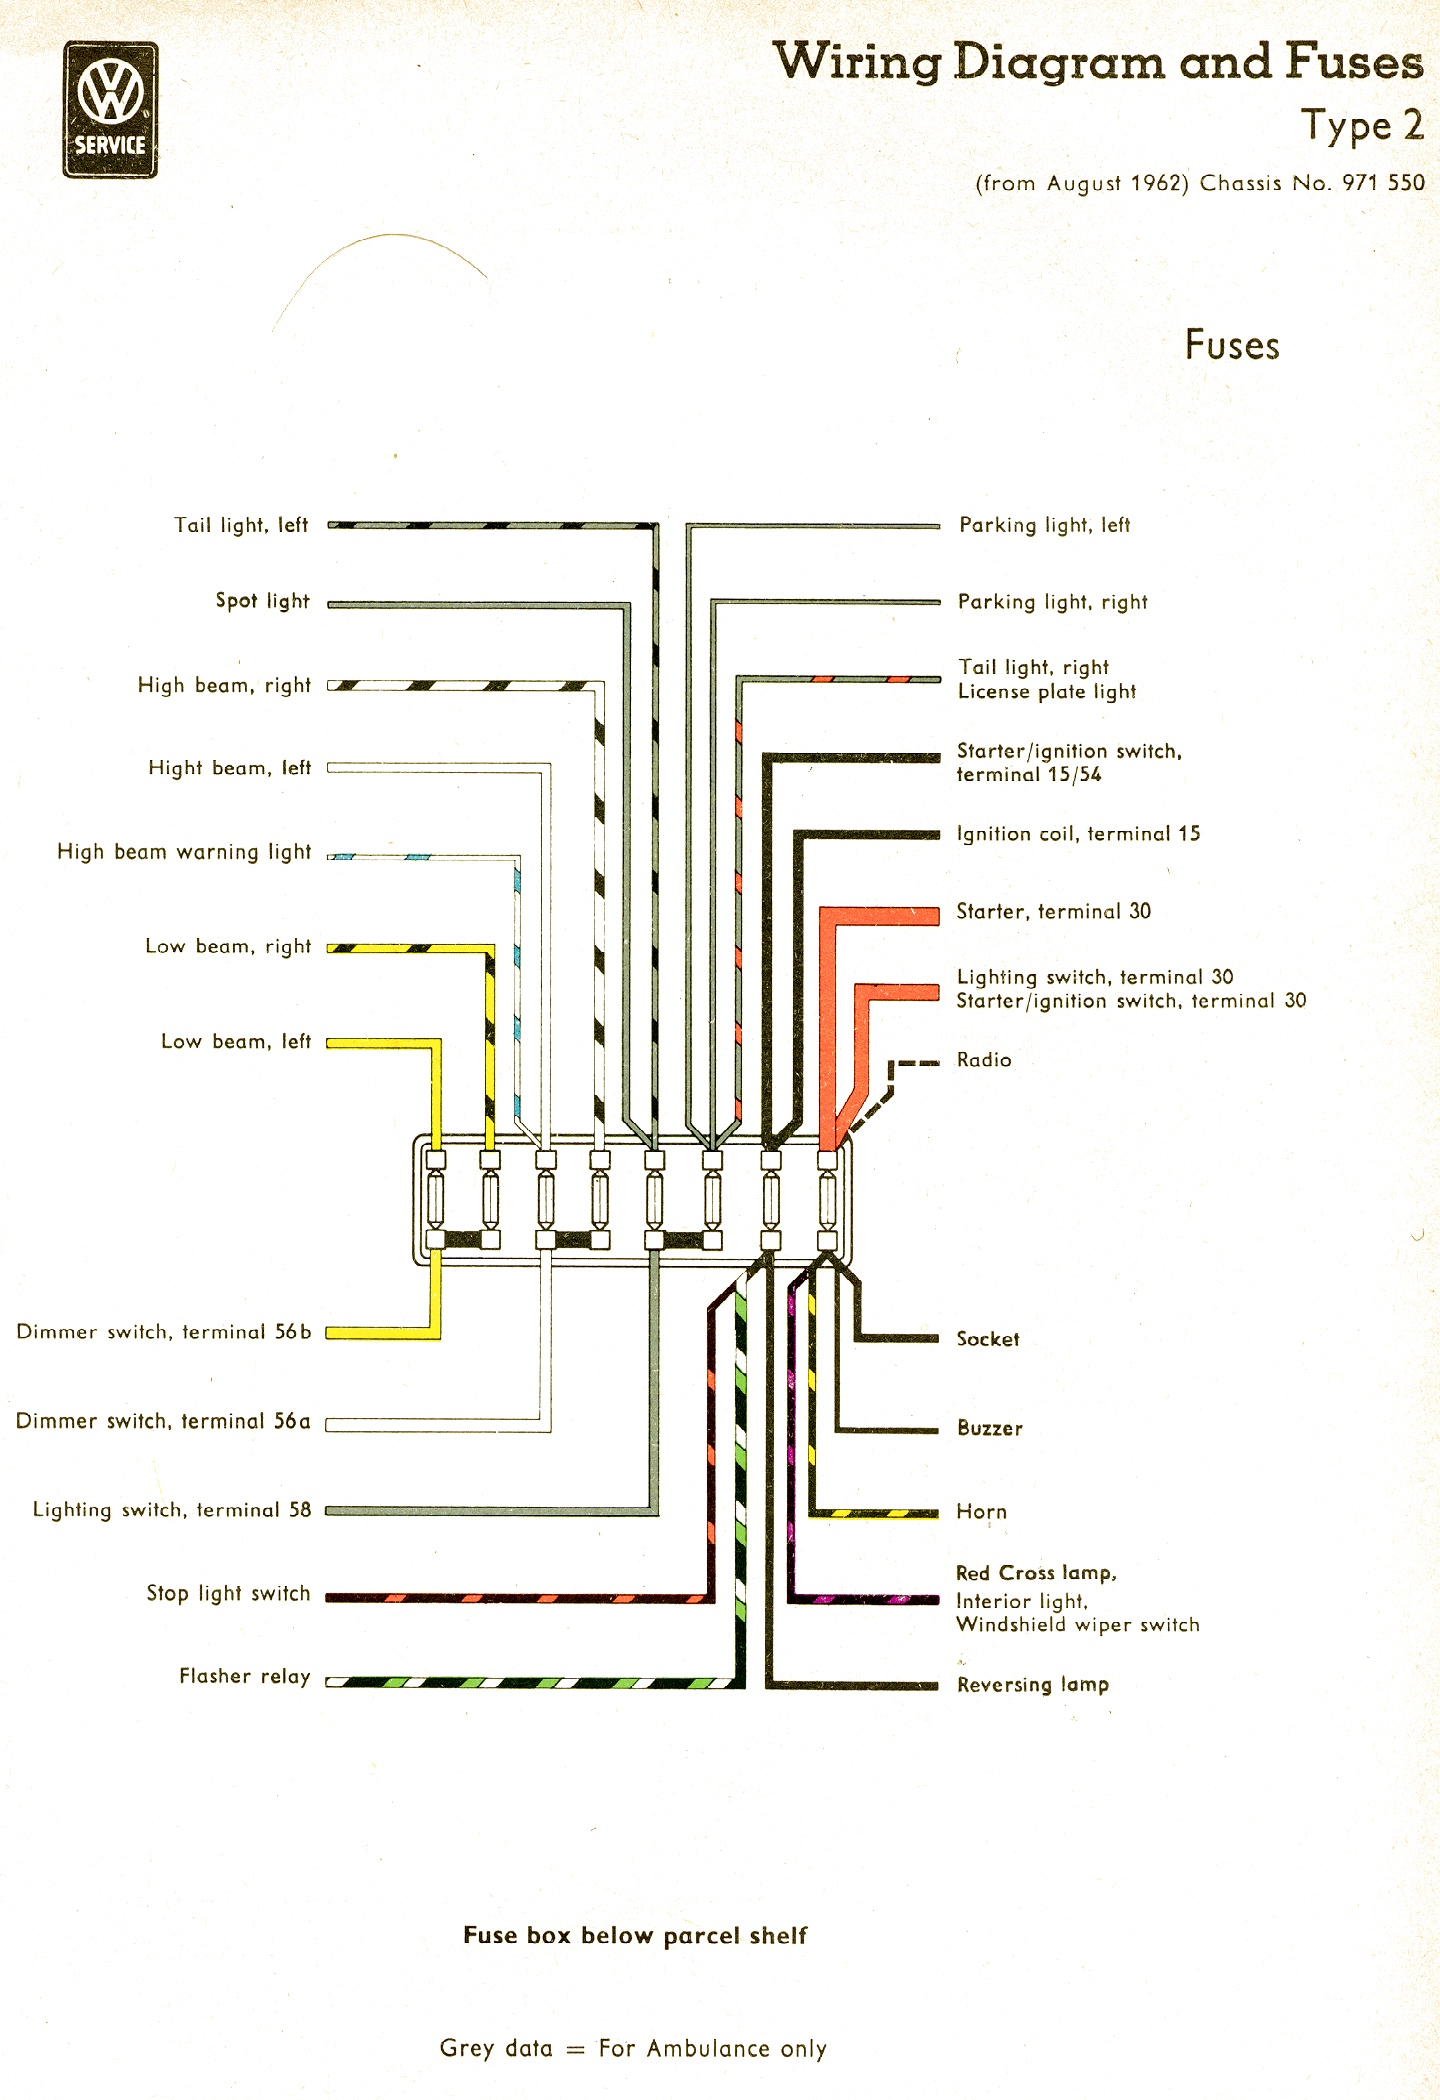 1970 Corvette Fuse Box Diagram Wiring Schematics 78 Vintagebus Com Vw Bus And Other Diagrams C5